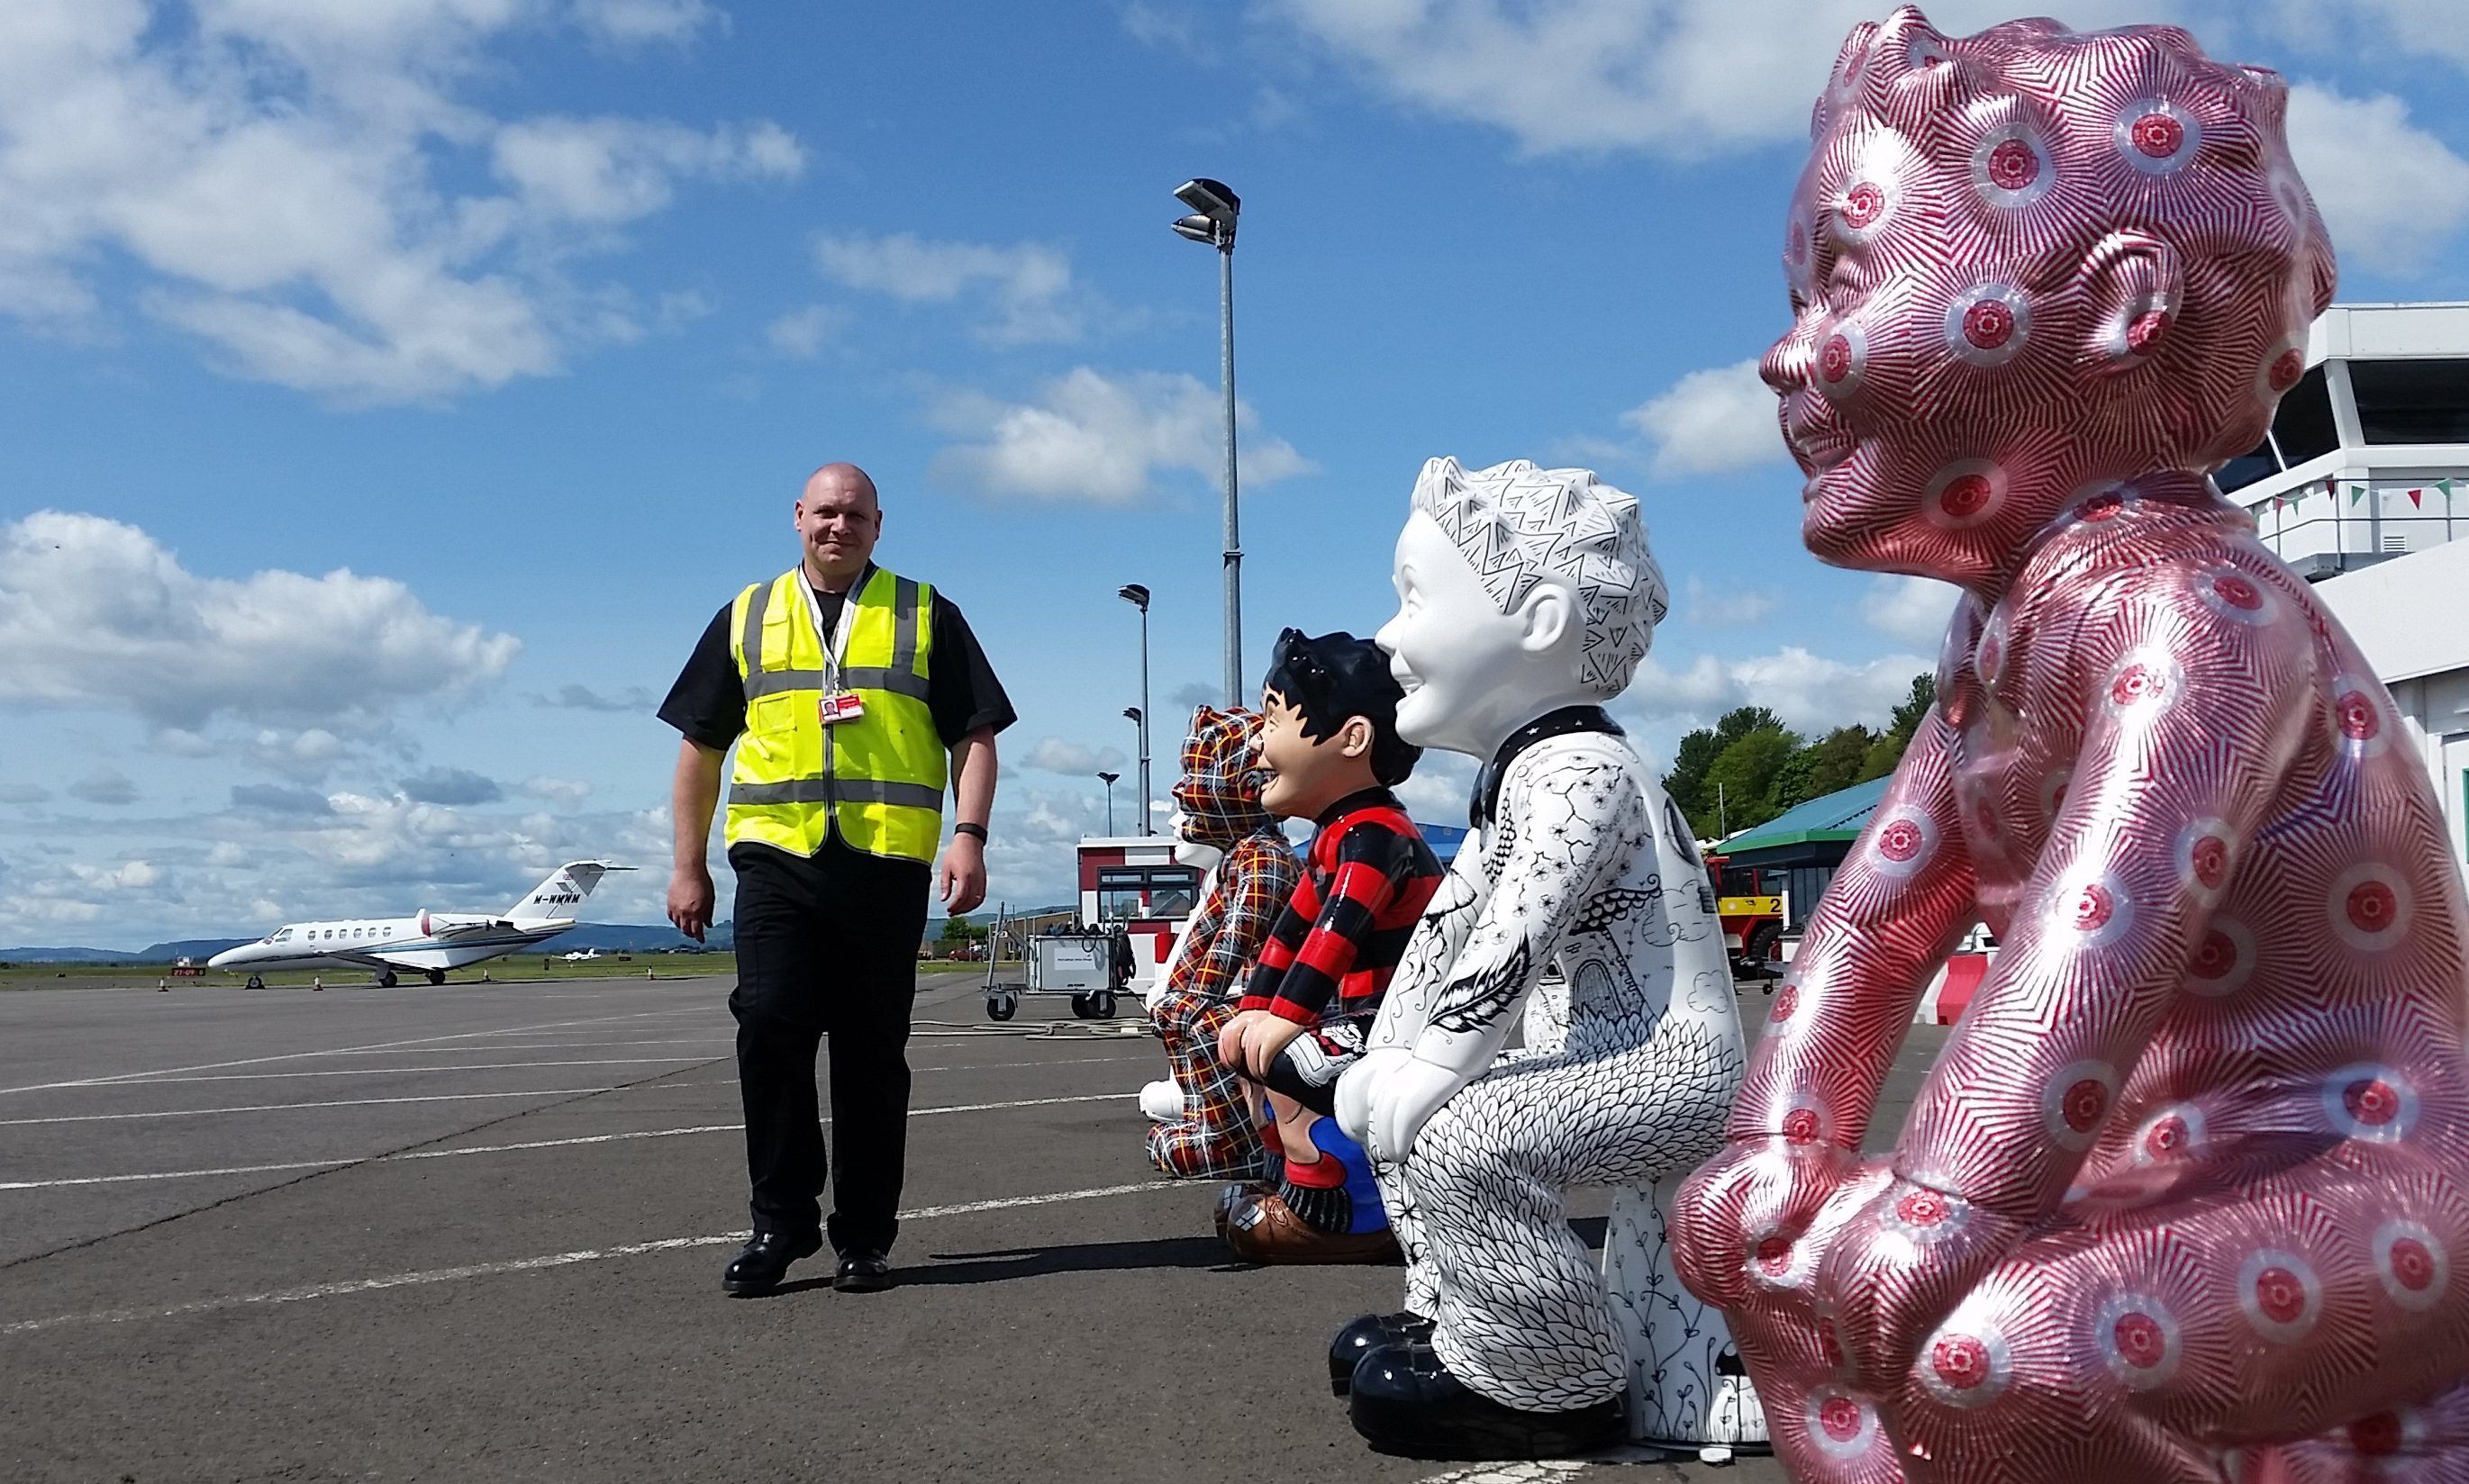 Crew manager Scott Raynor walks past an Oor Wullie guard of honour awaiting the first flight from Amsterdam.